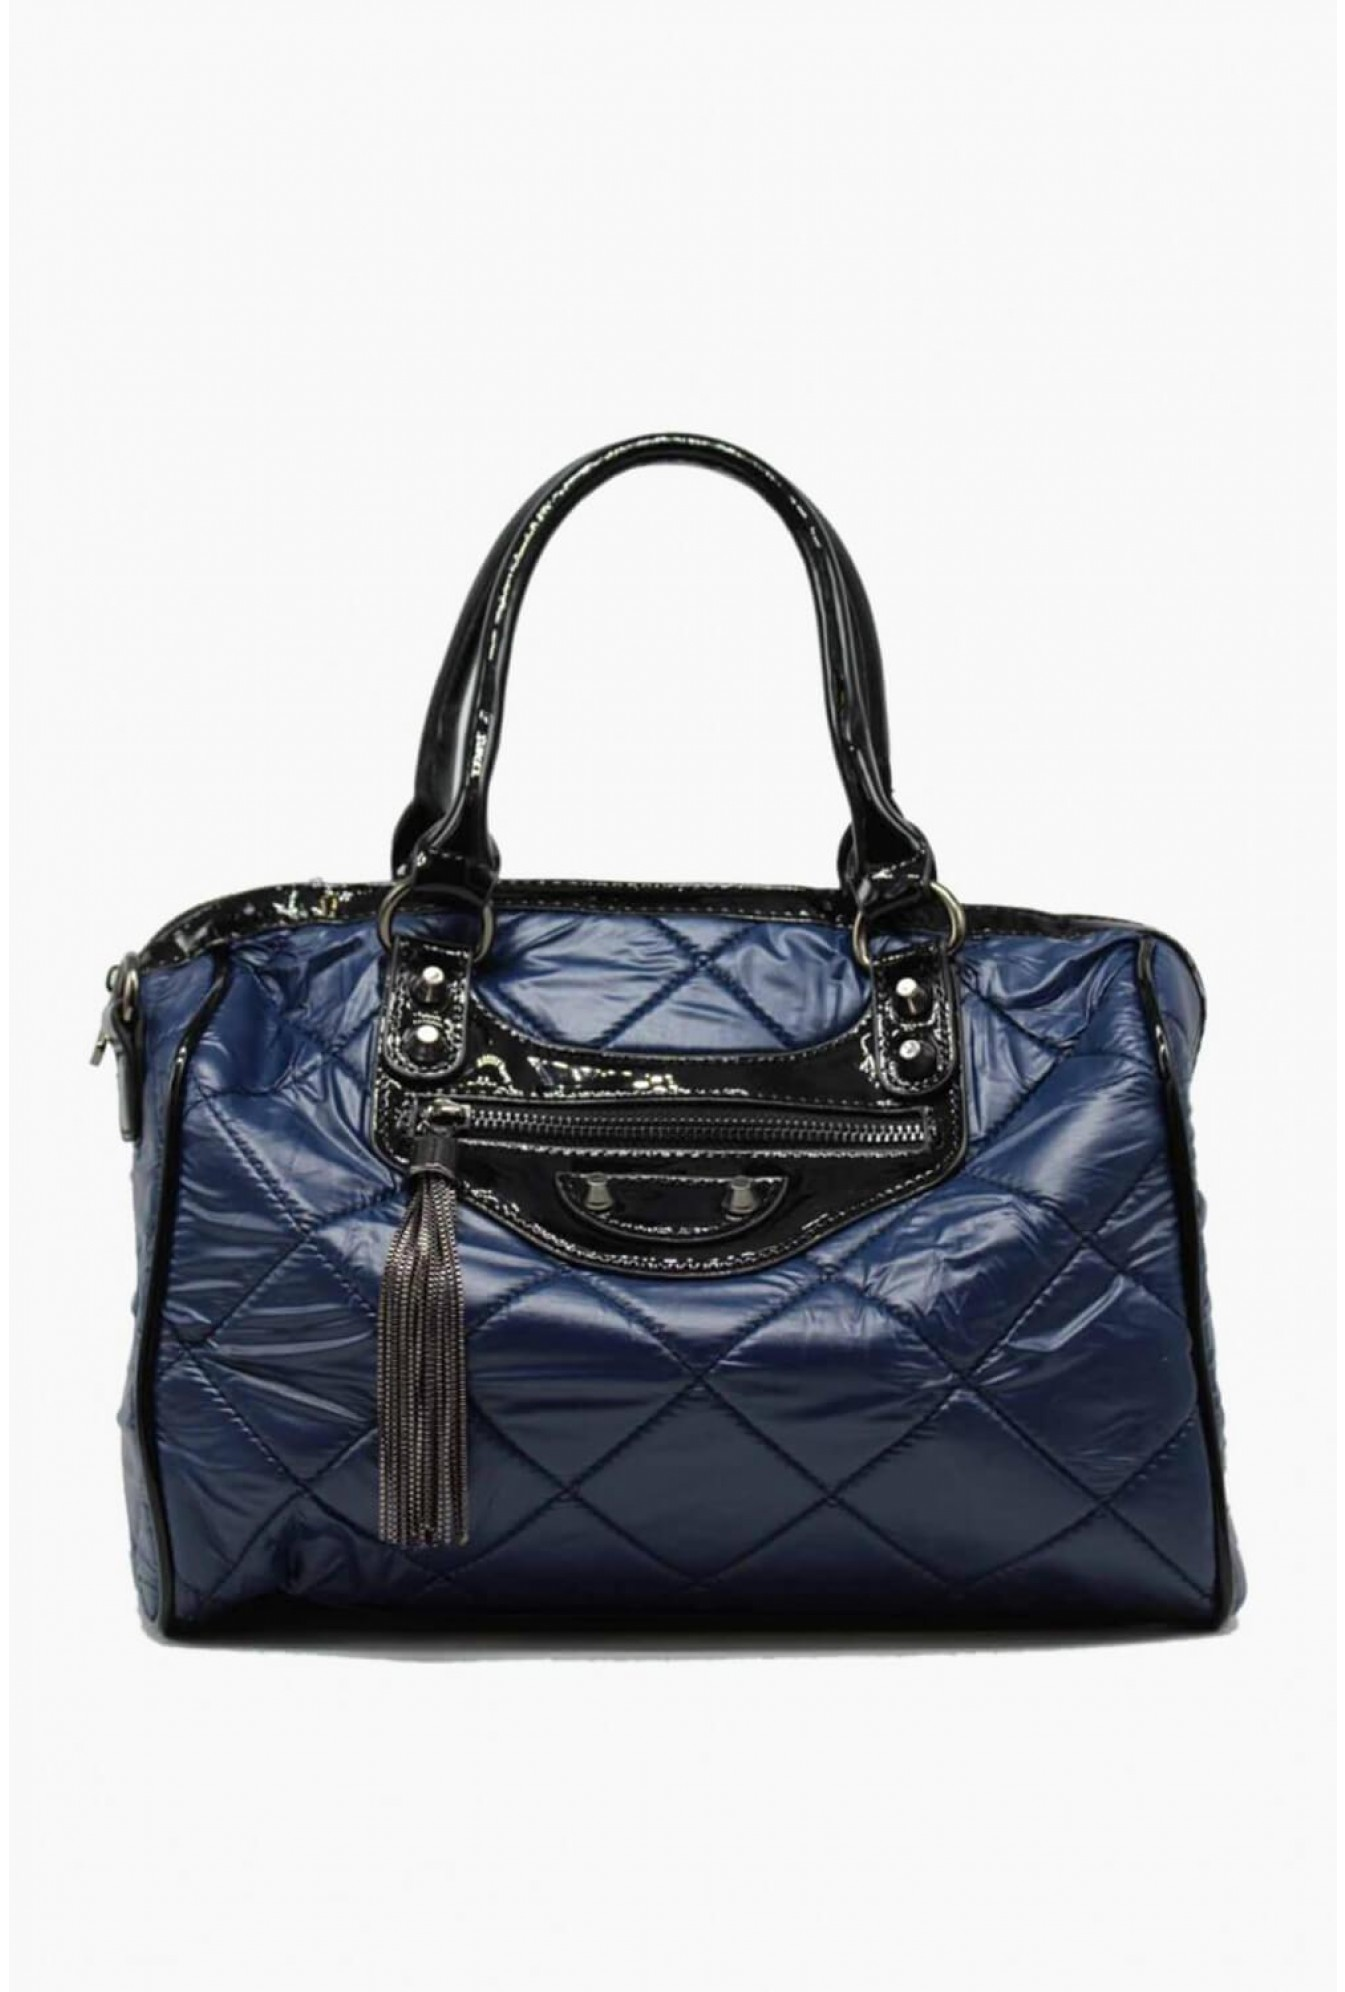 07236120fa ... 331000 black quilted nylon gym bag front view gold interior navy. More  Views Zac Quilted Handbag In Navy. Zac Quilted Handbag In Navy